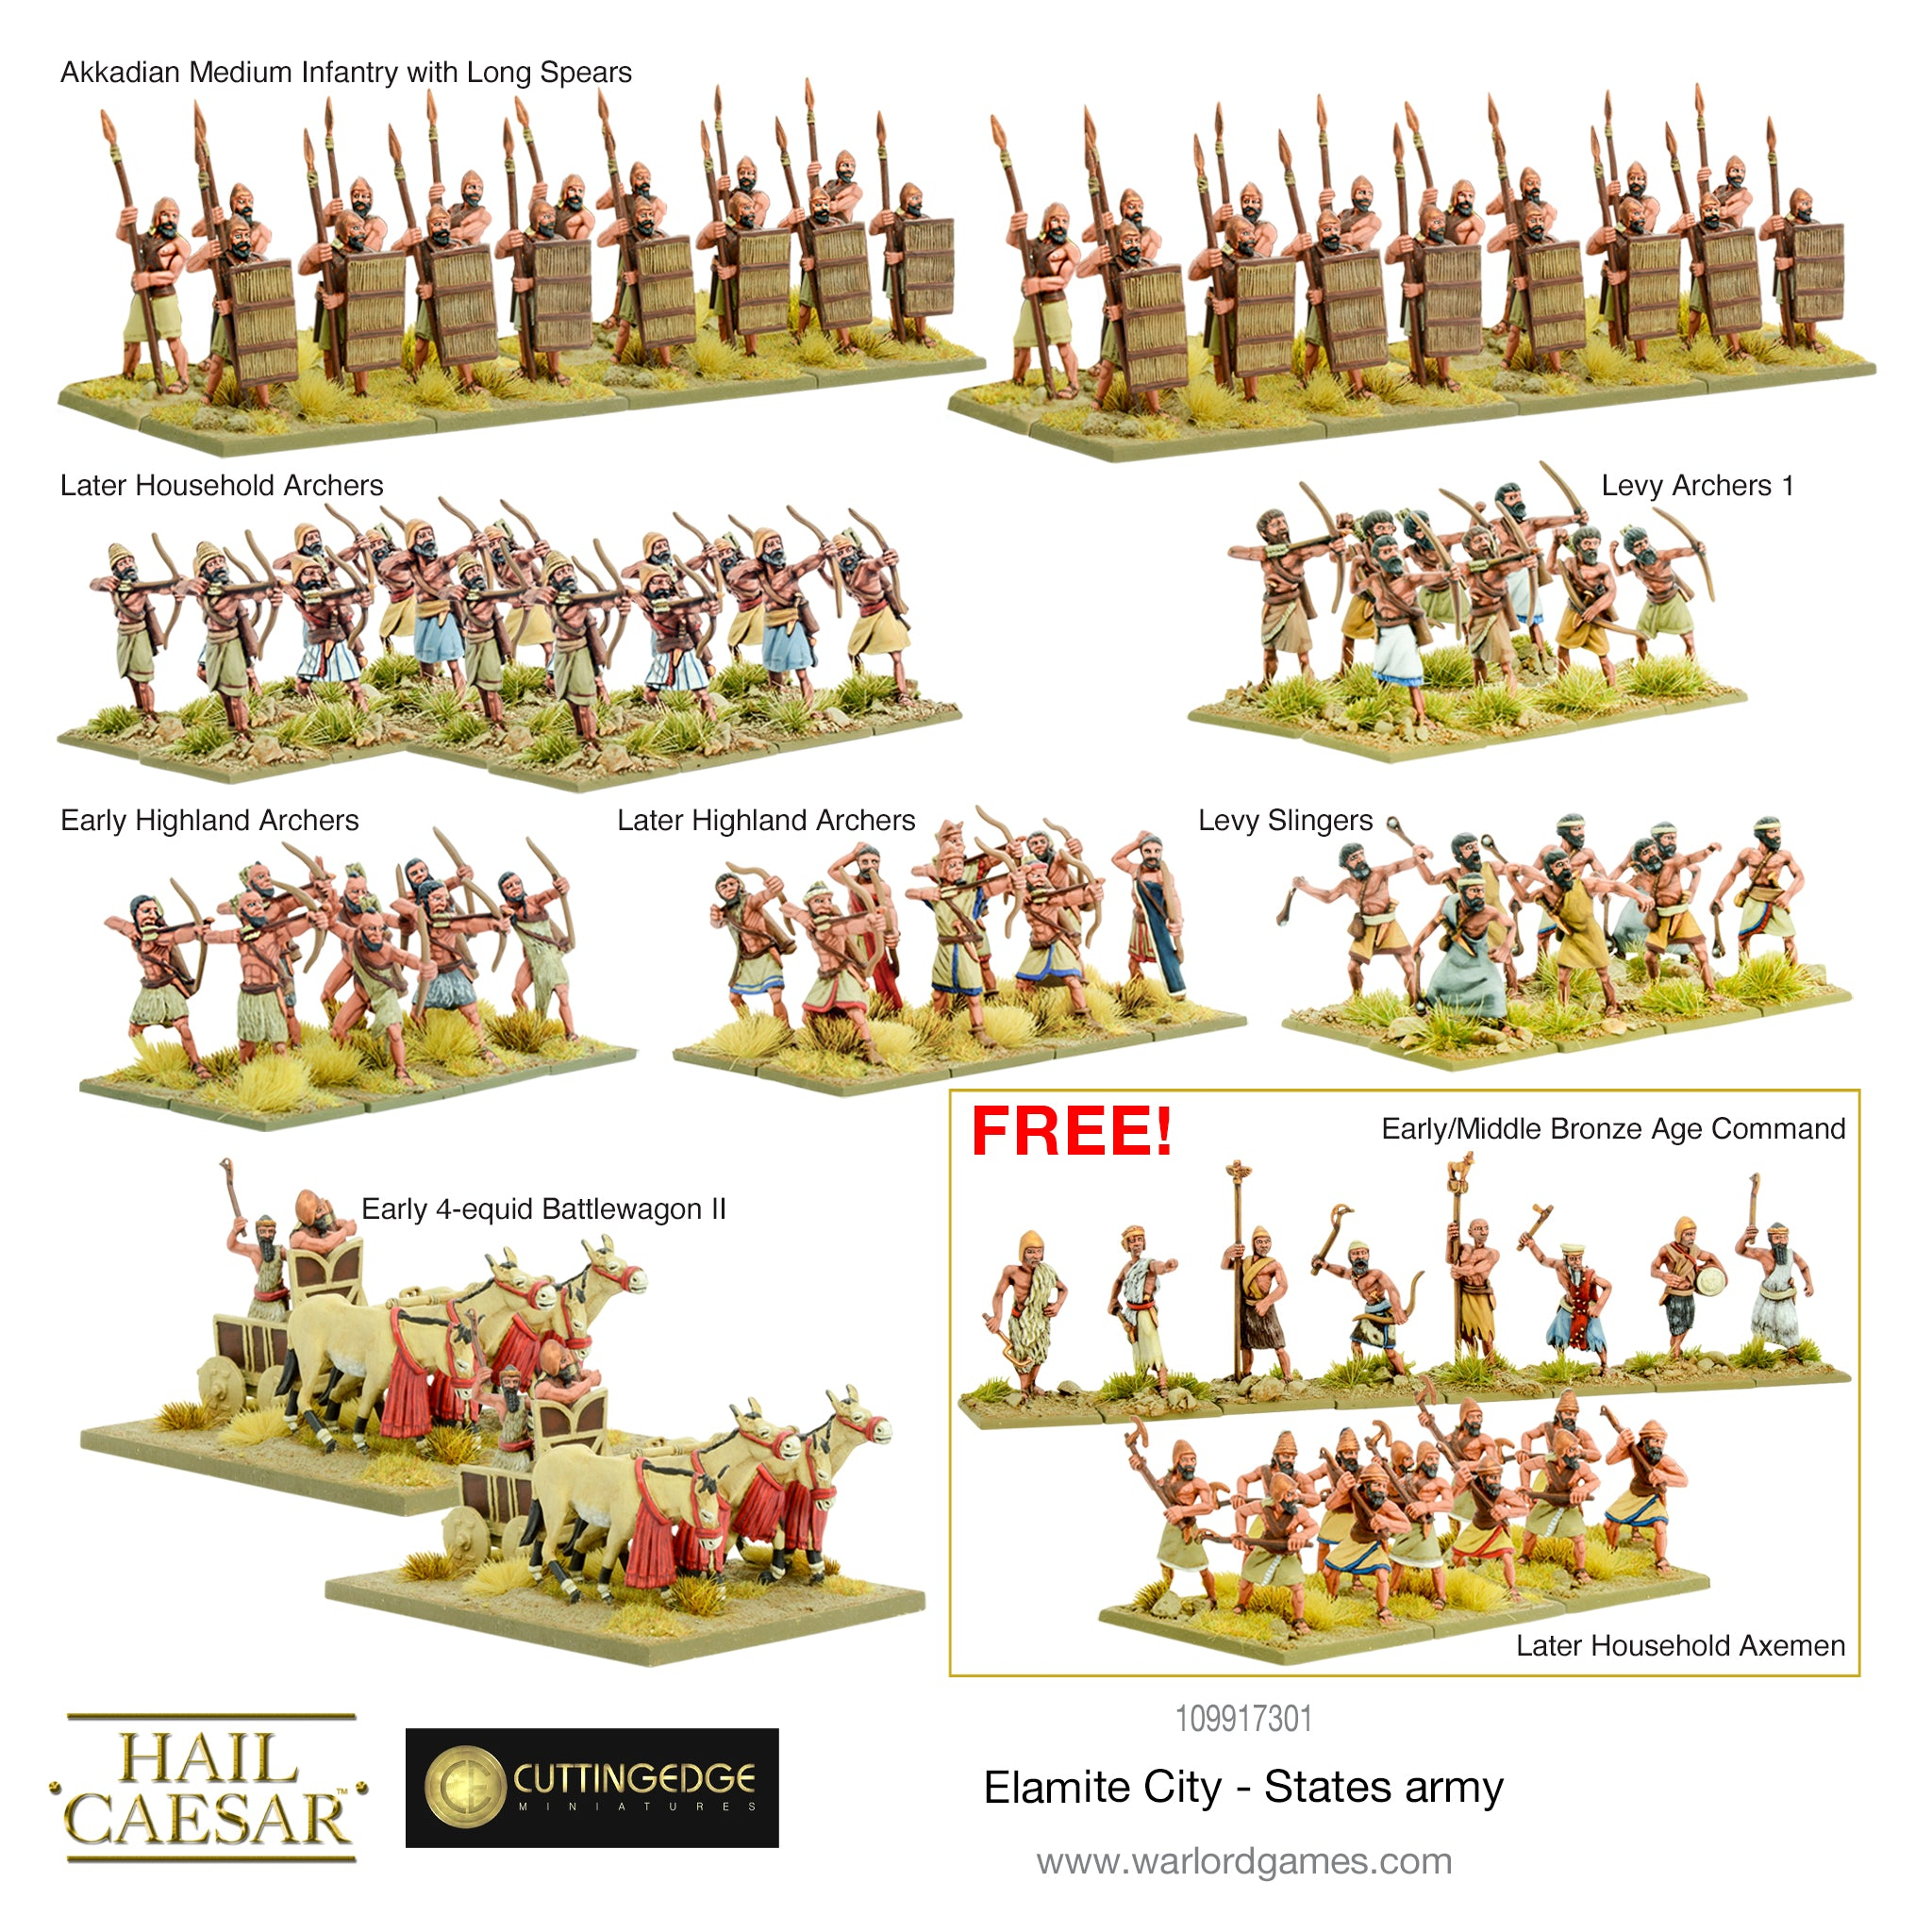 Elamite City-States army deal